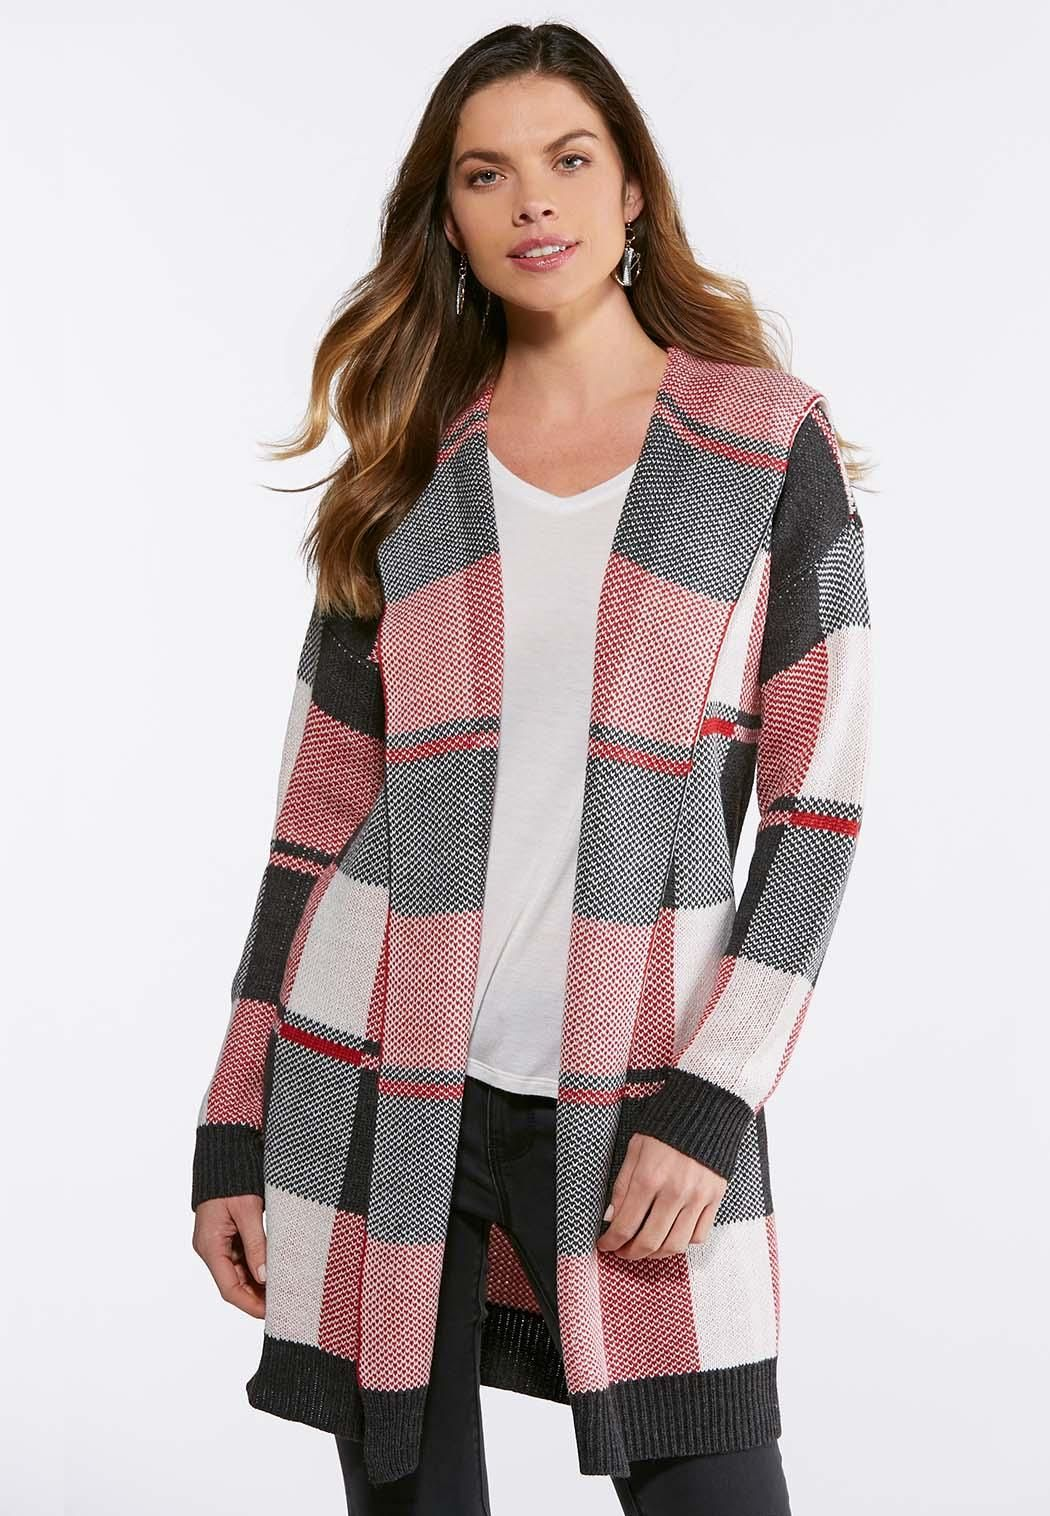 Plus Size Red Plaid Cardigan Catoconfident Fashion Is A Passion